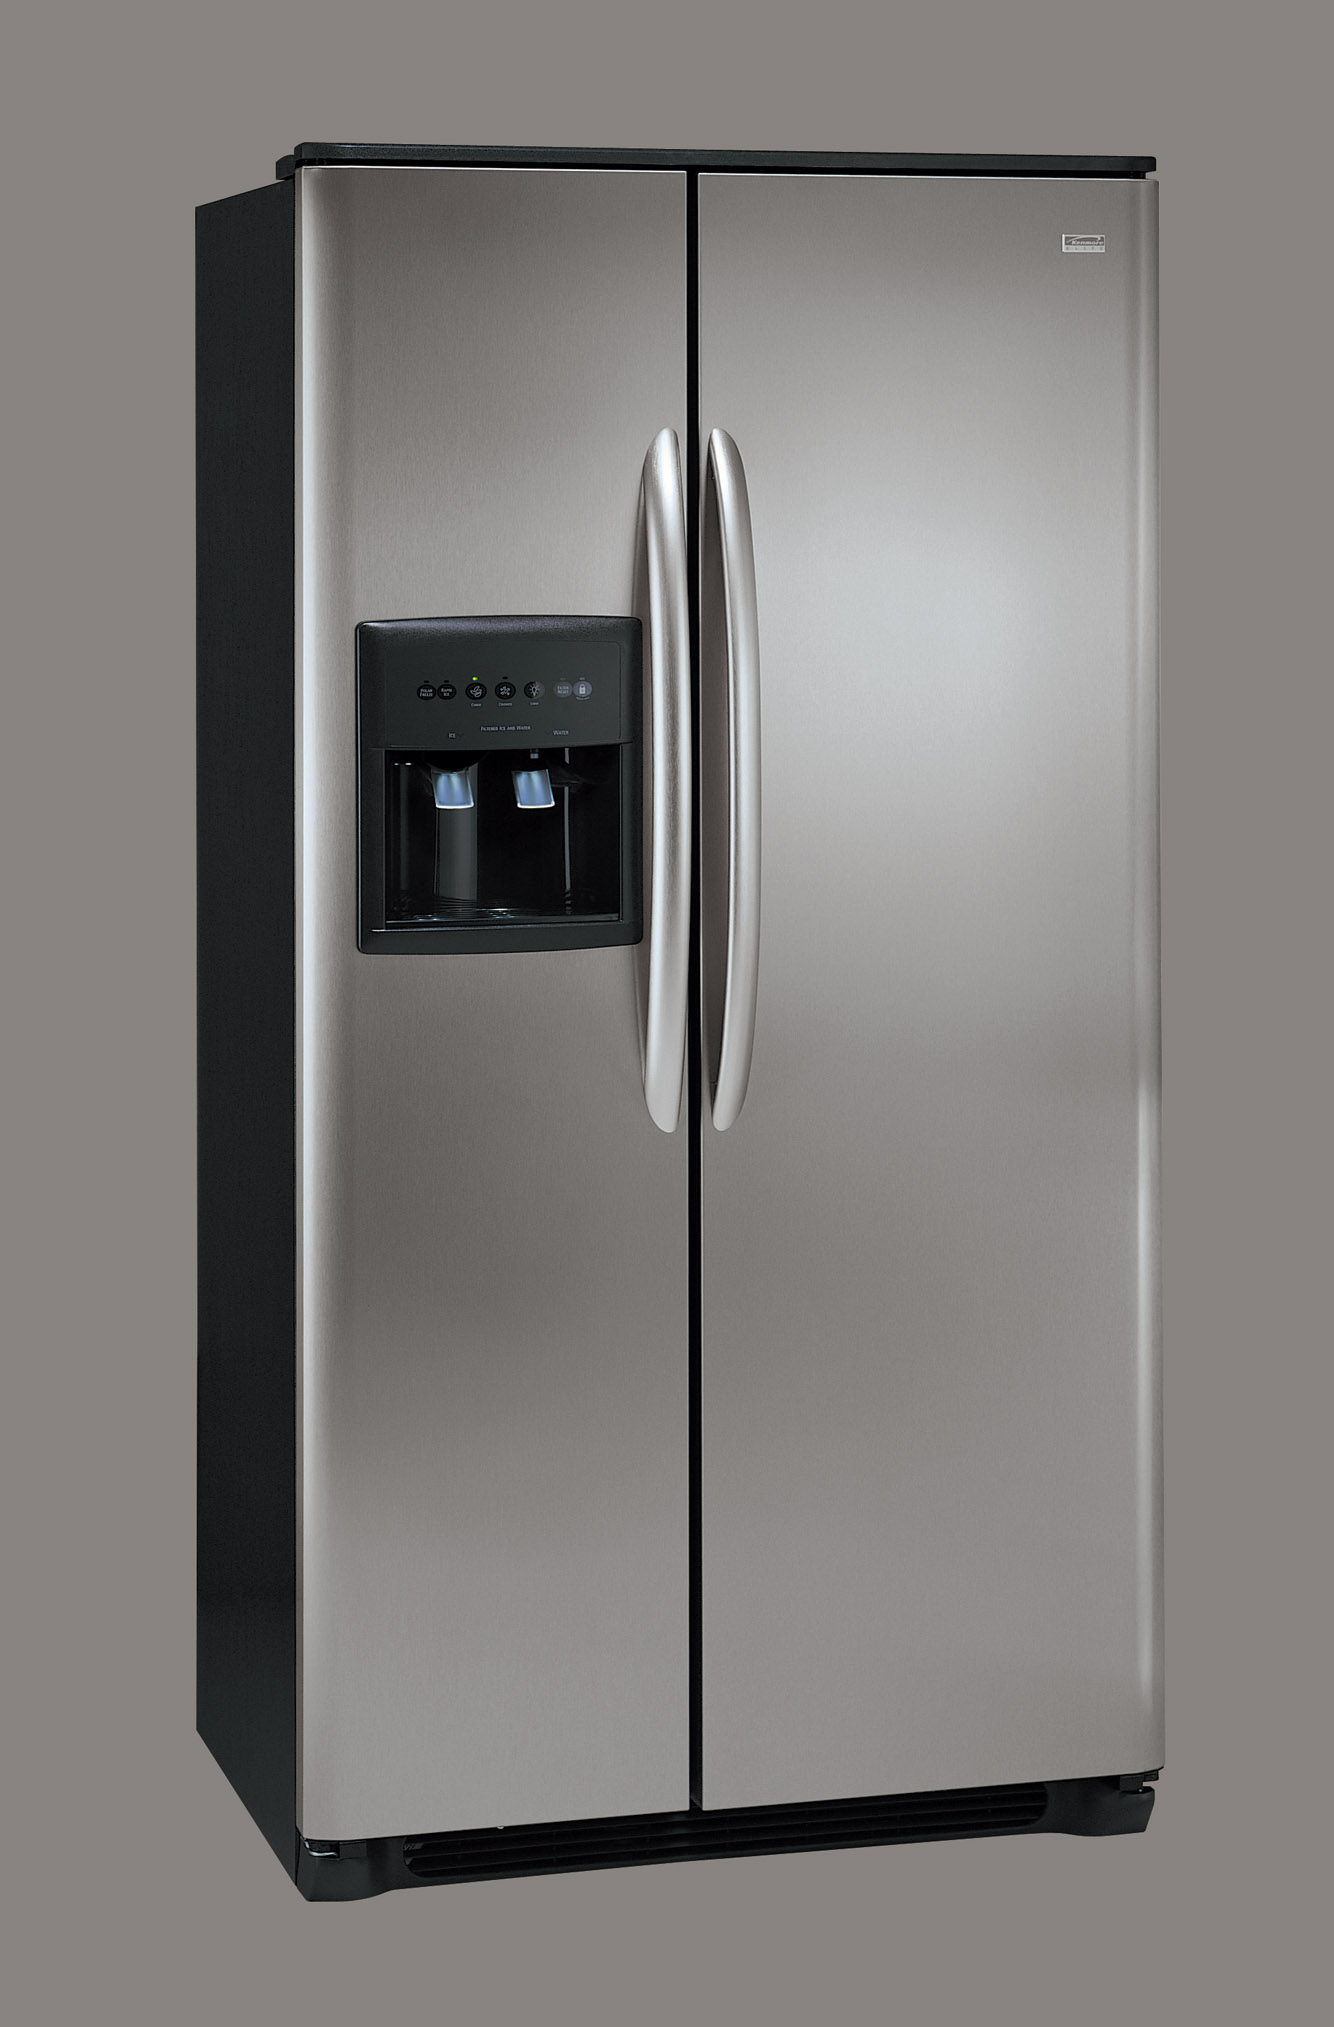 Kenmore Refrigerator 253.44383402 Product Detail